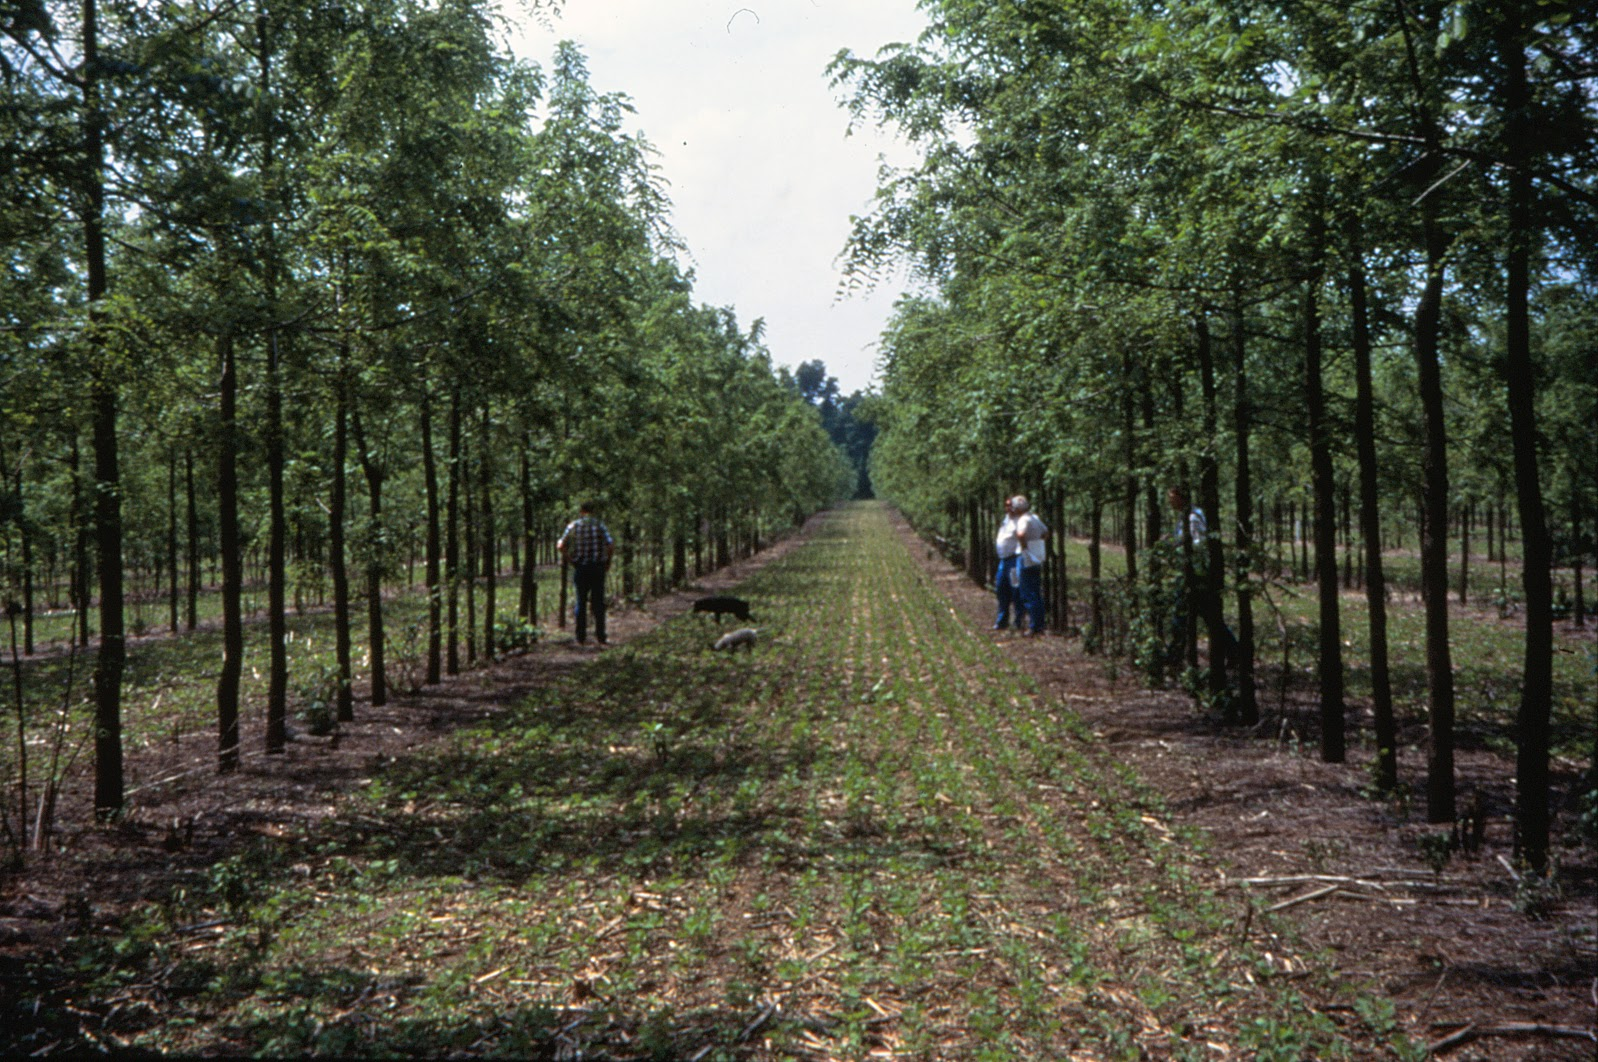 co-planting, soybeans, walnut trees